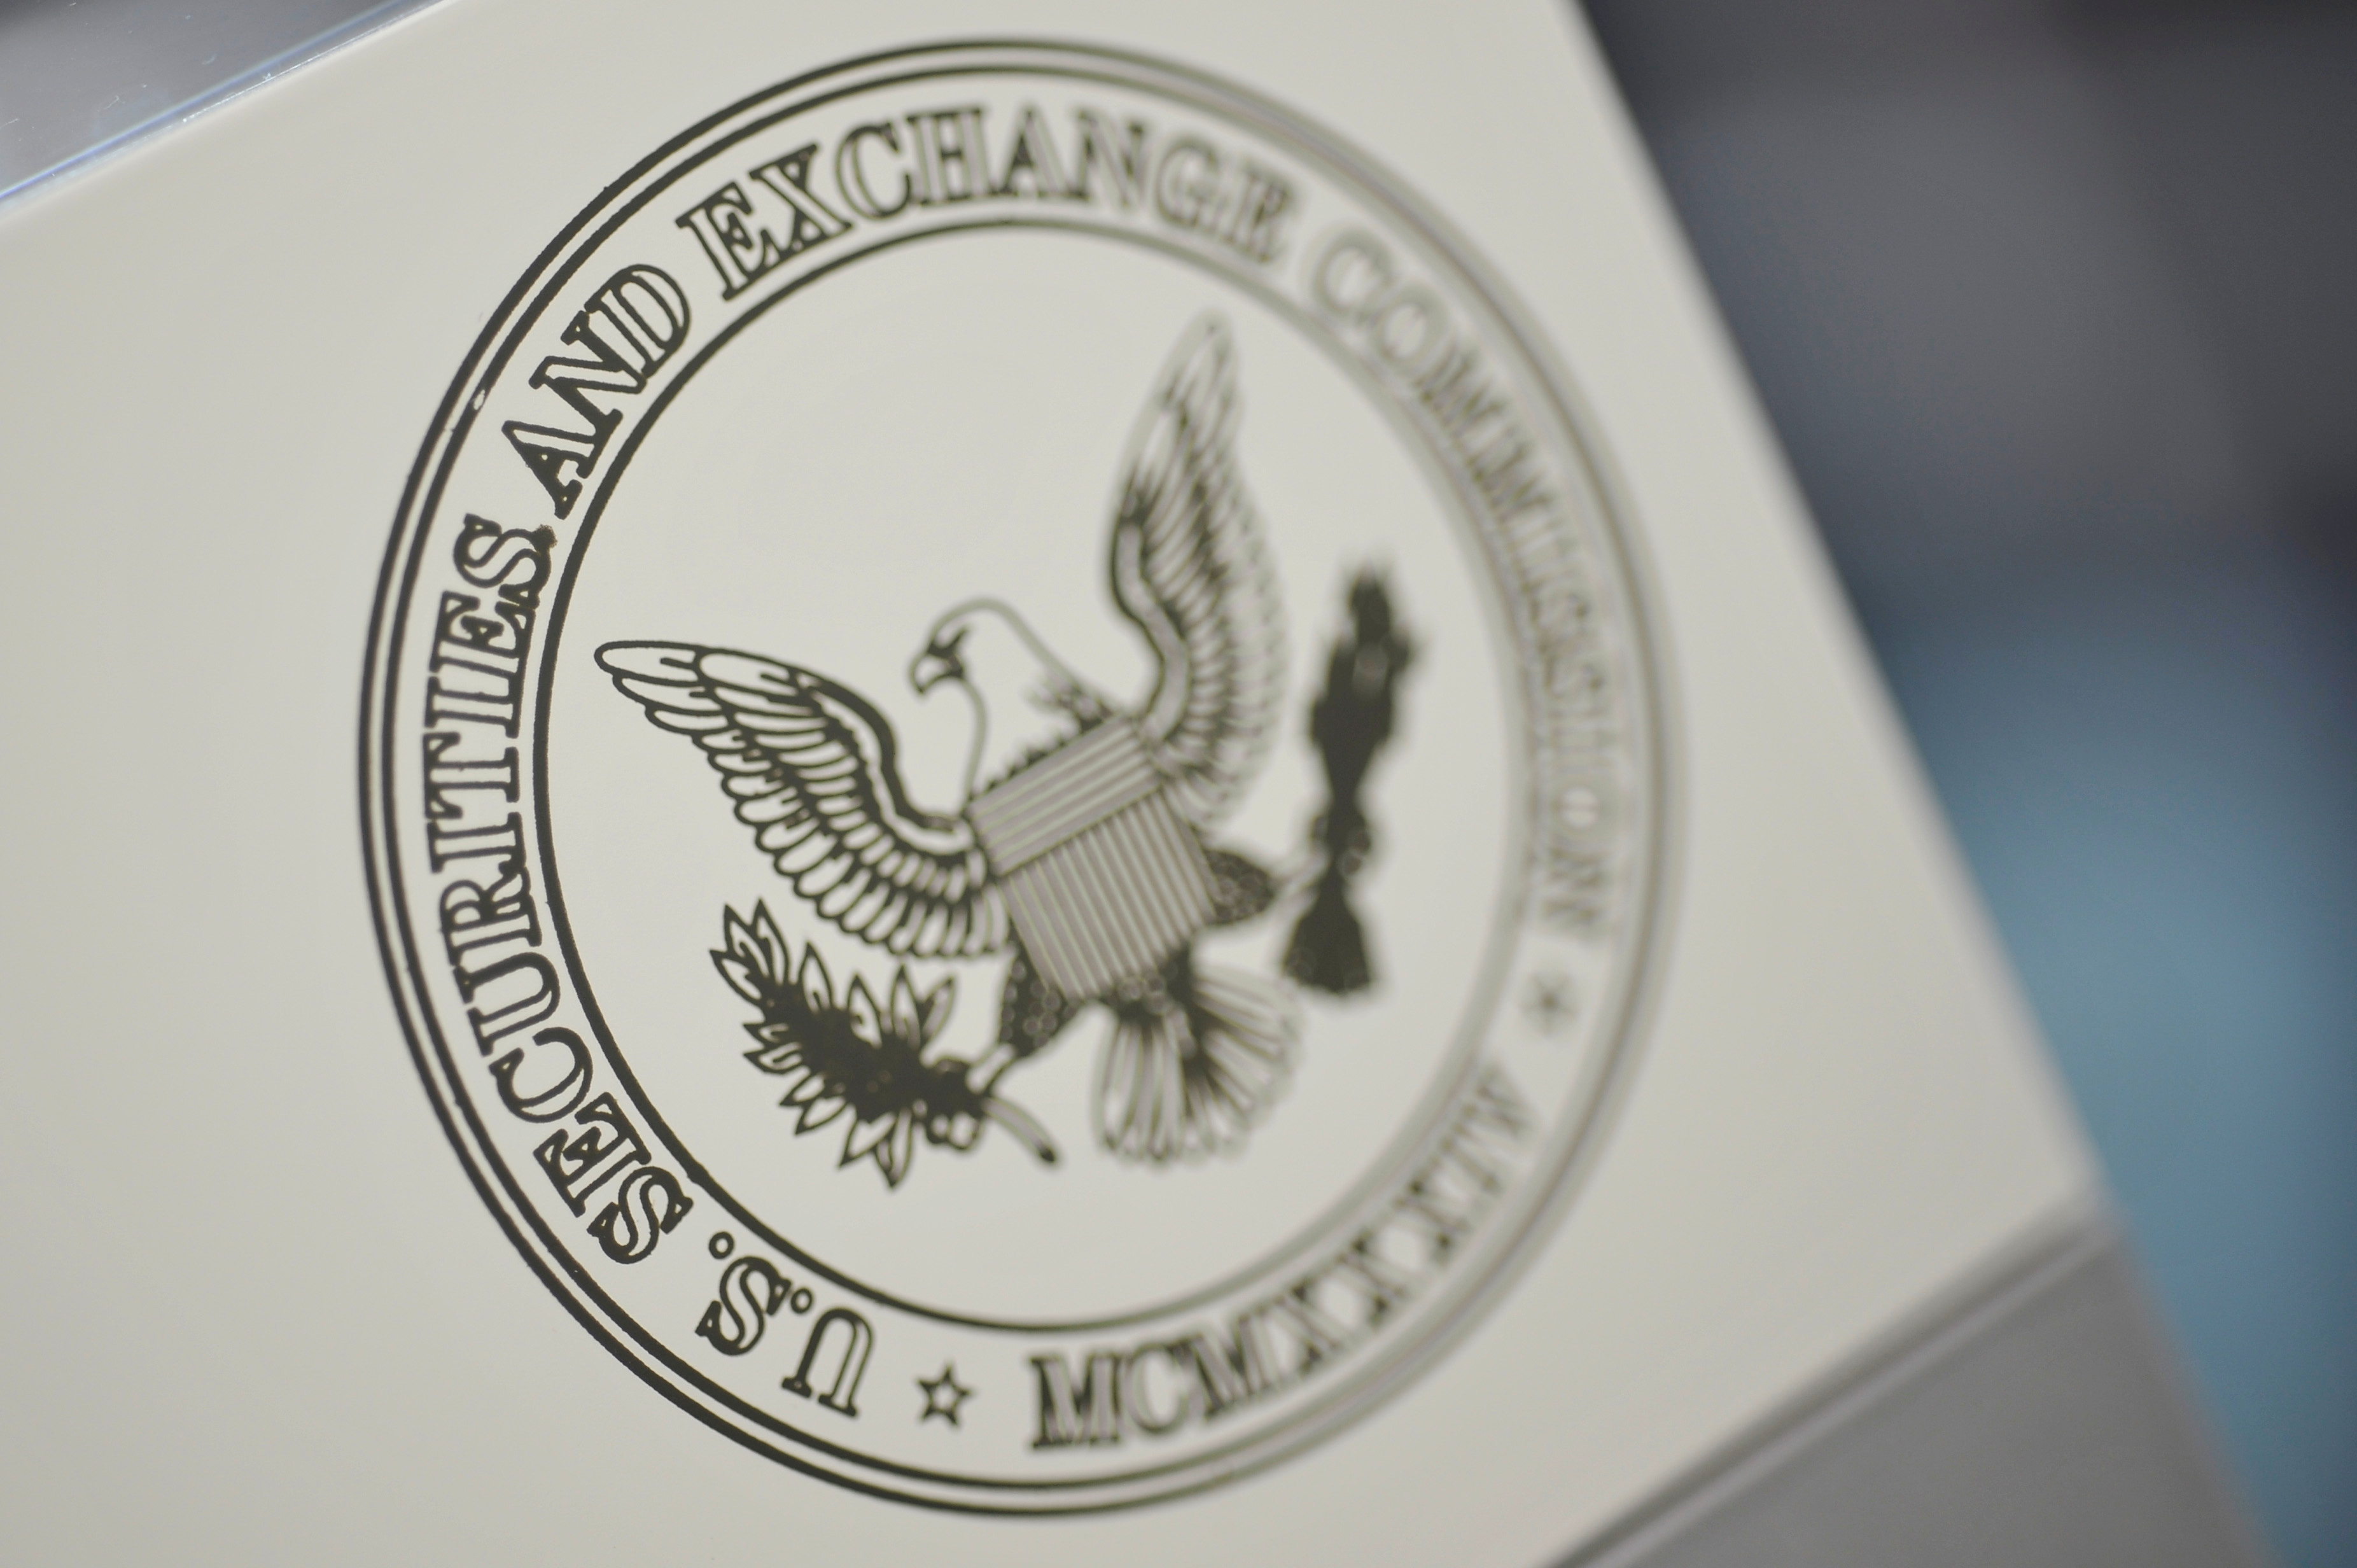 The U.S. Securities and Exchange Commission logo adorns an office door at the SEC headquarters in Washington, June 24, 2011. REUTERS/Jonathan Ernst/File Photo